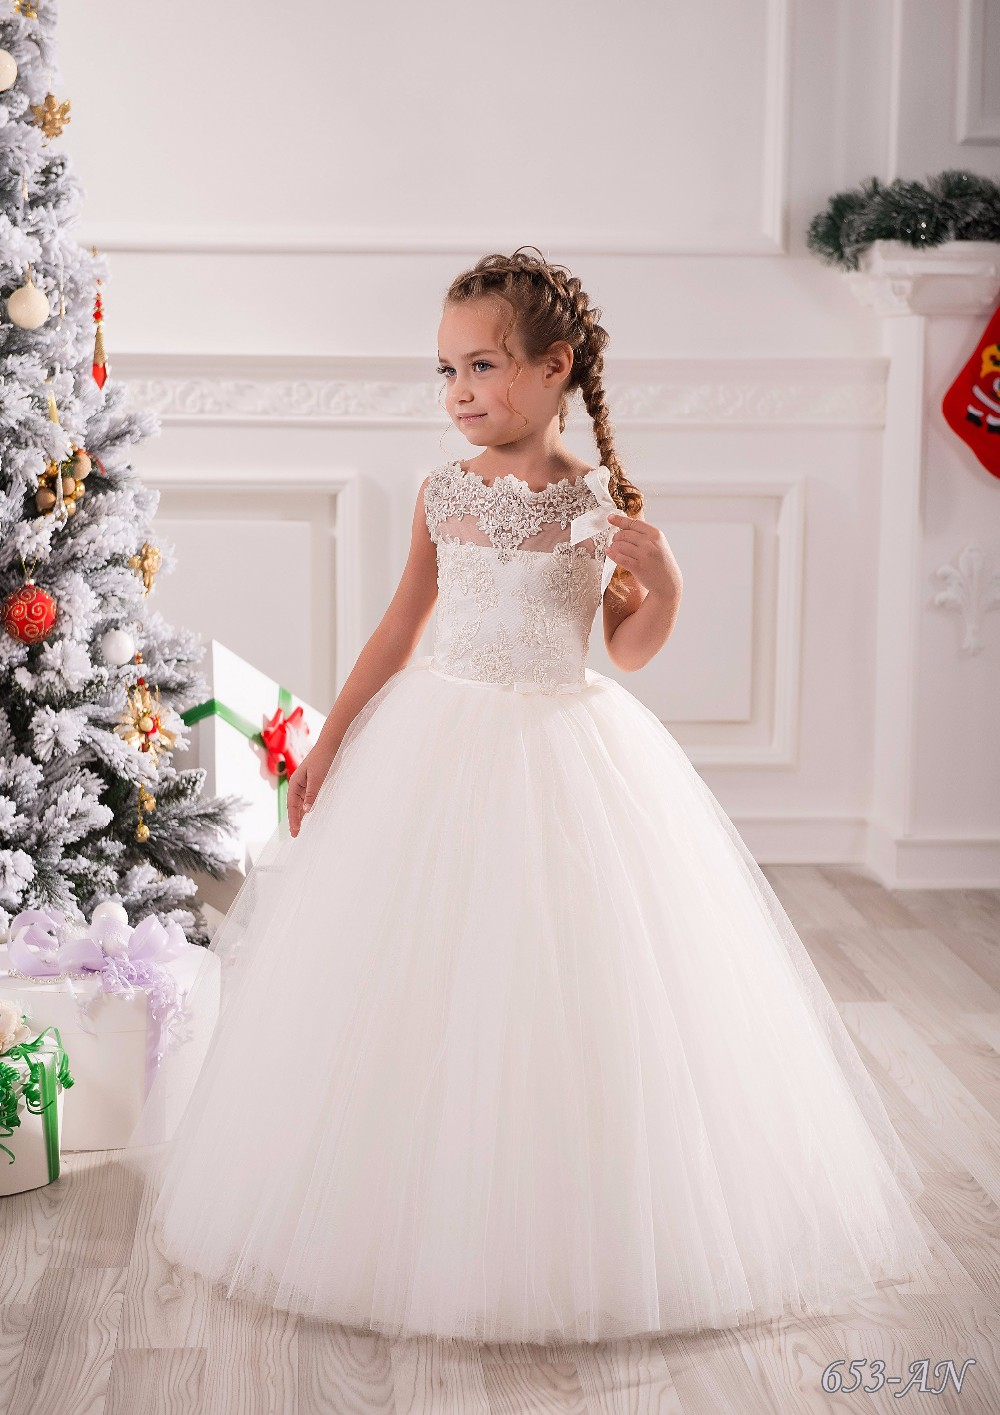 New Lace Flower Girls Dresses Wedding Party Dress Ball ...